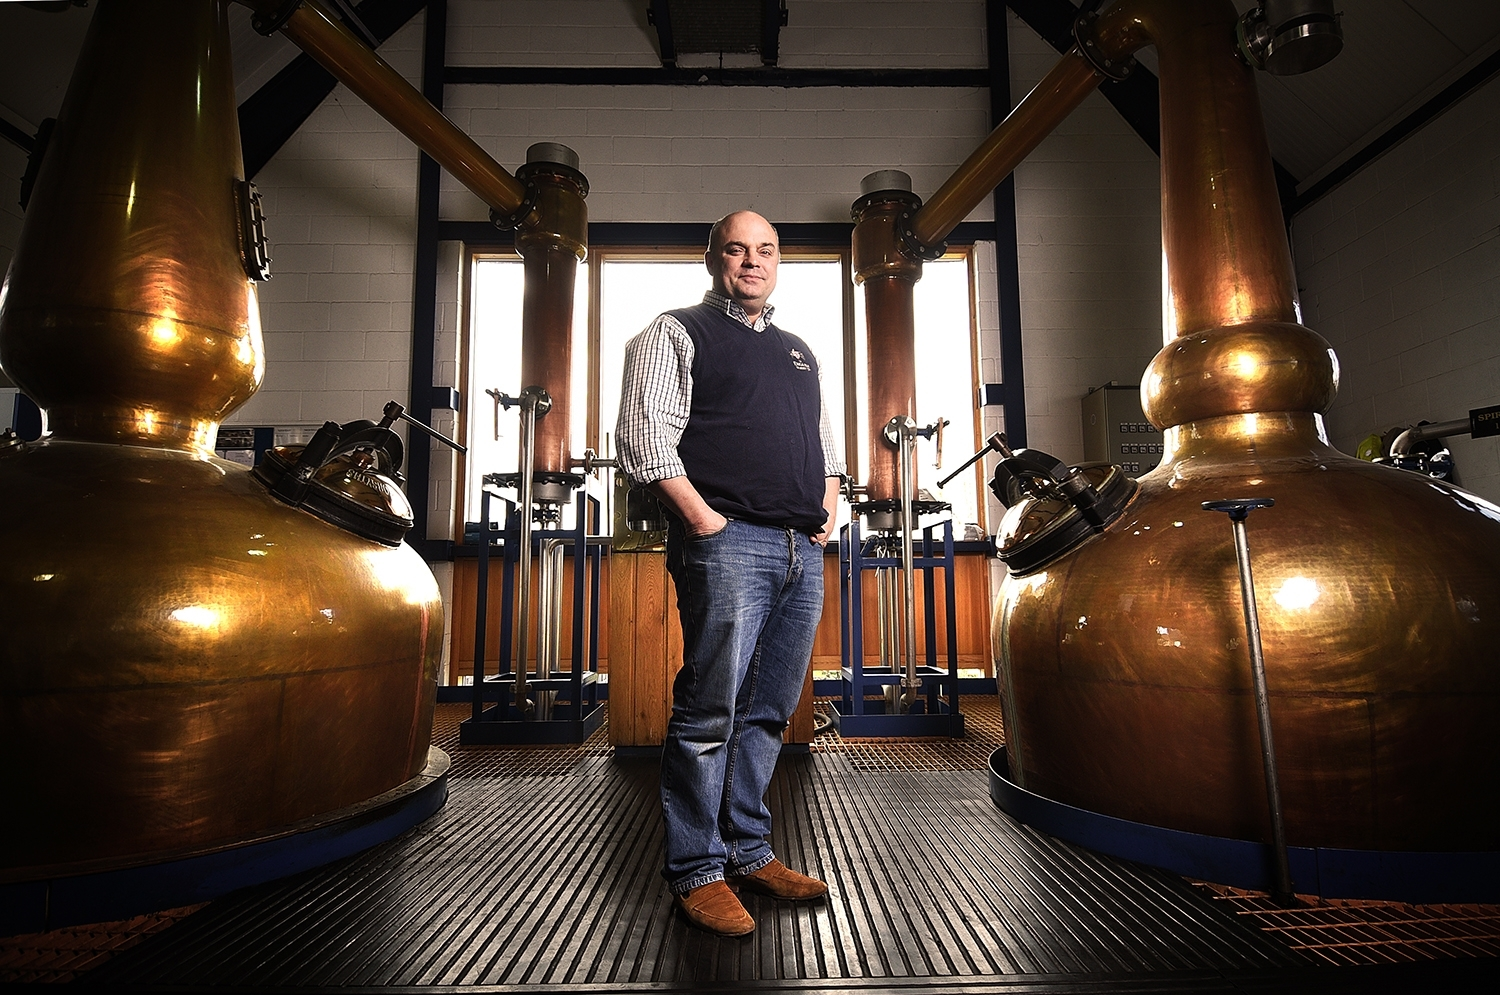 The English Whisky Company at St George's Distillery, Roudham, near Thetford. Owner Andrew Nelstrop.